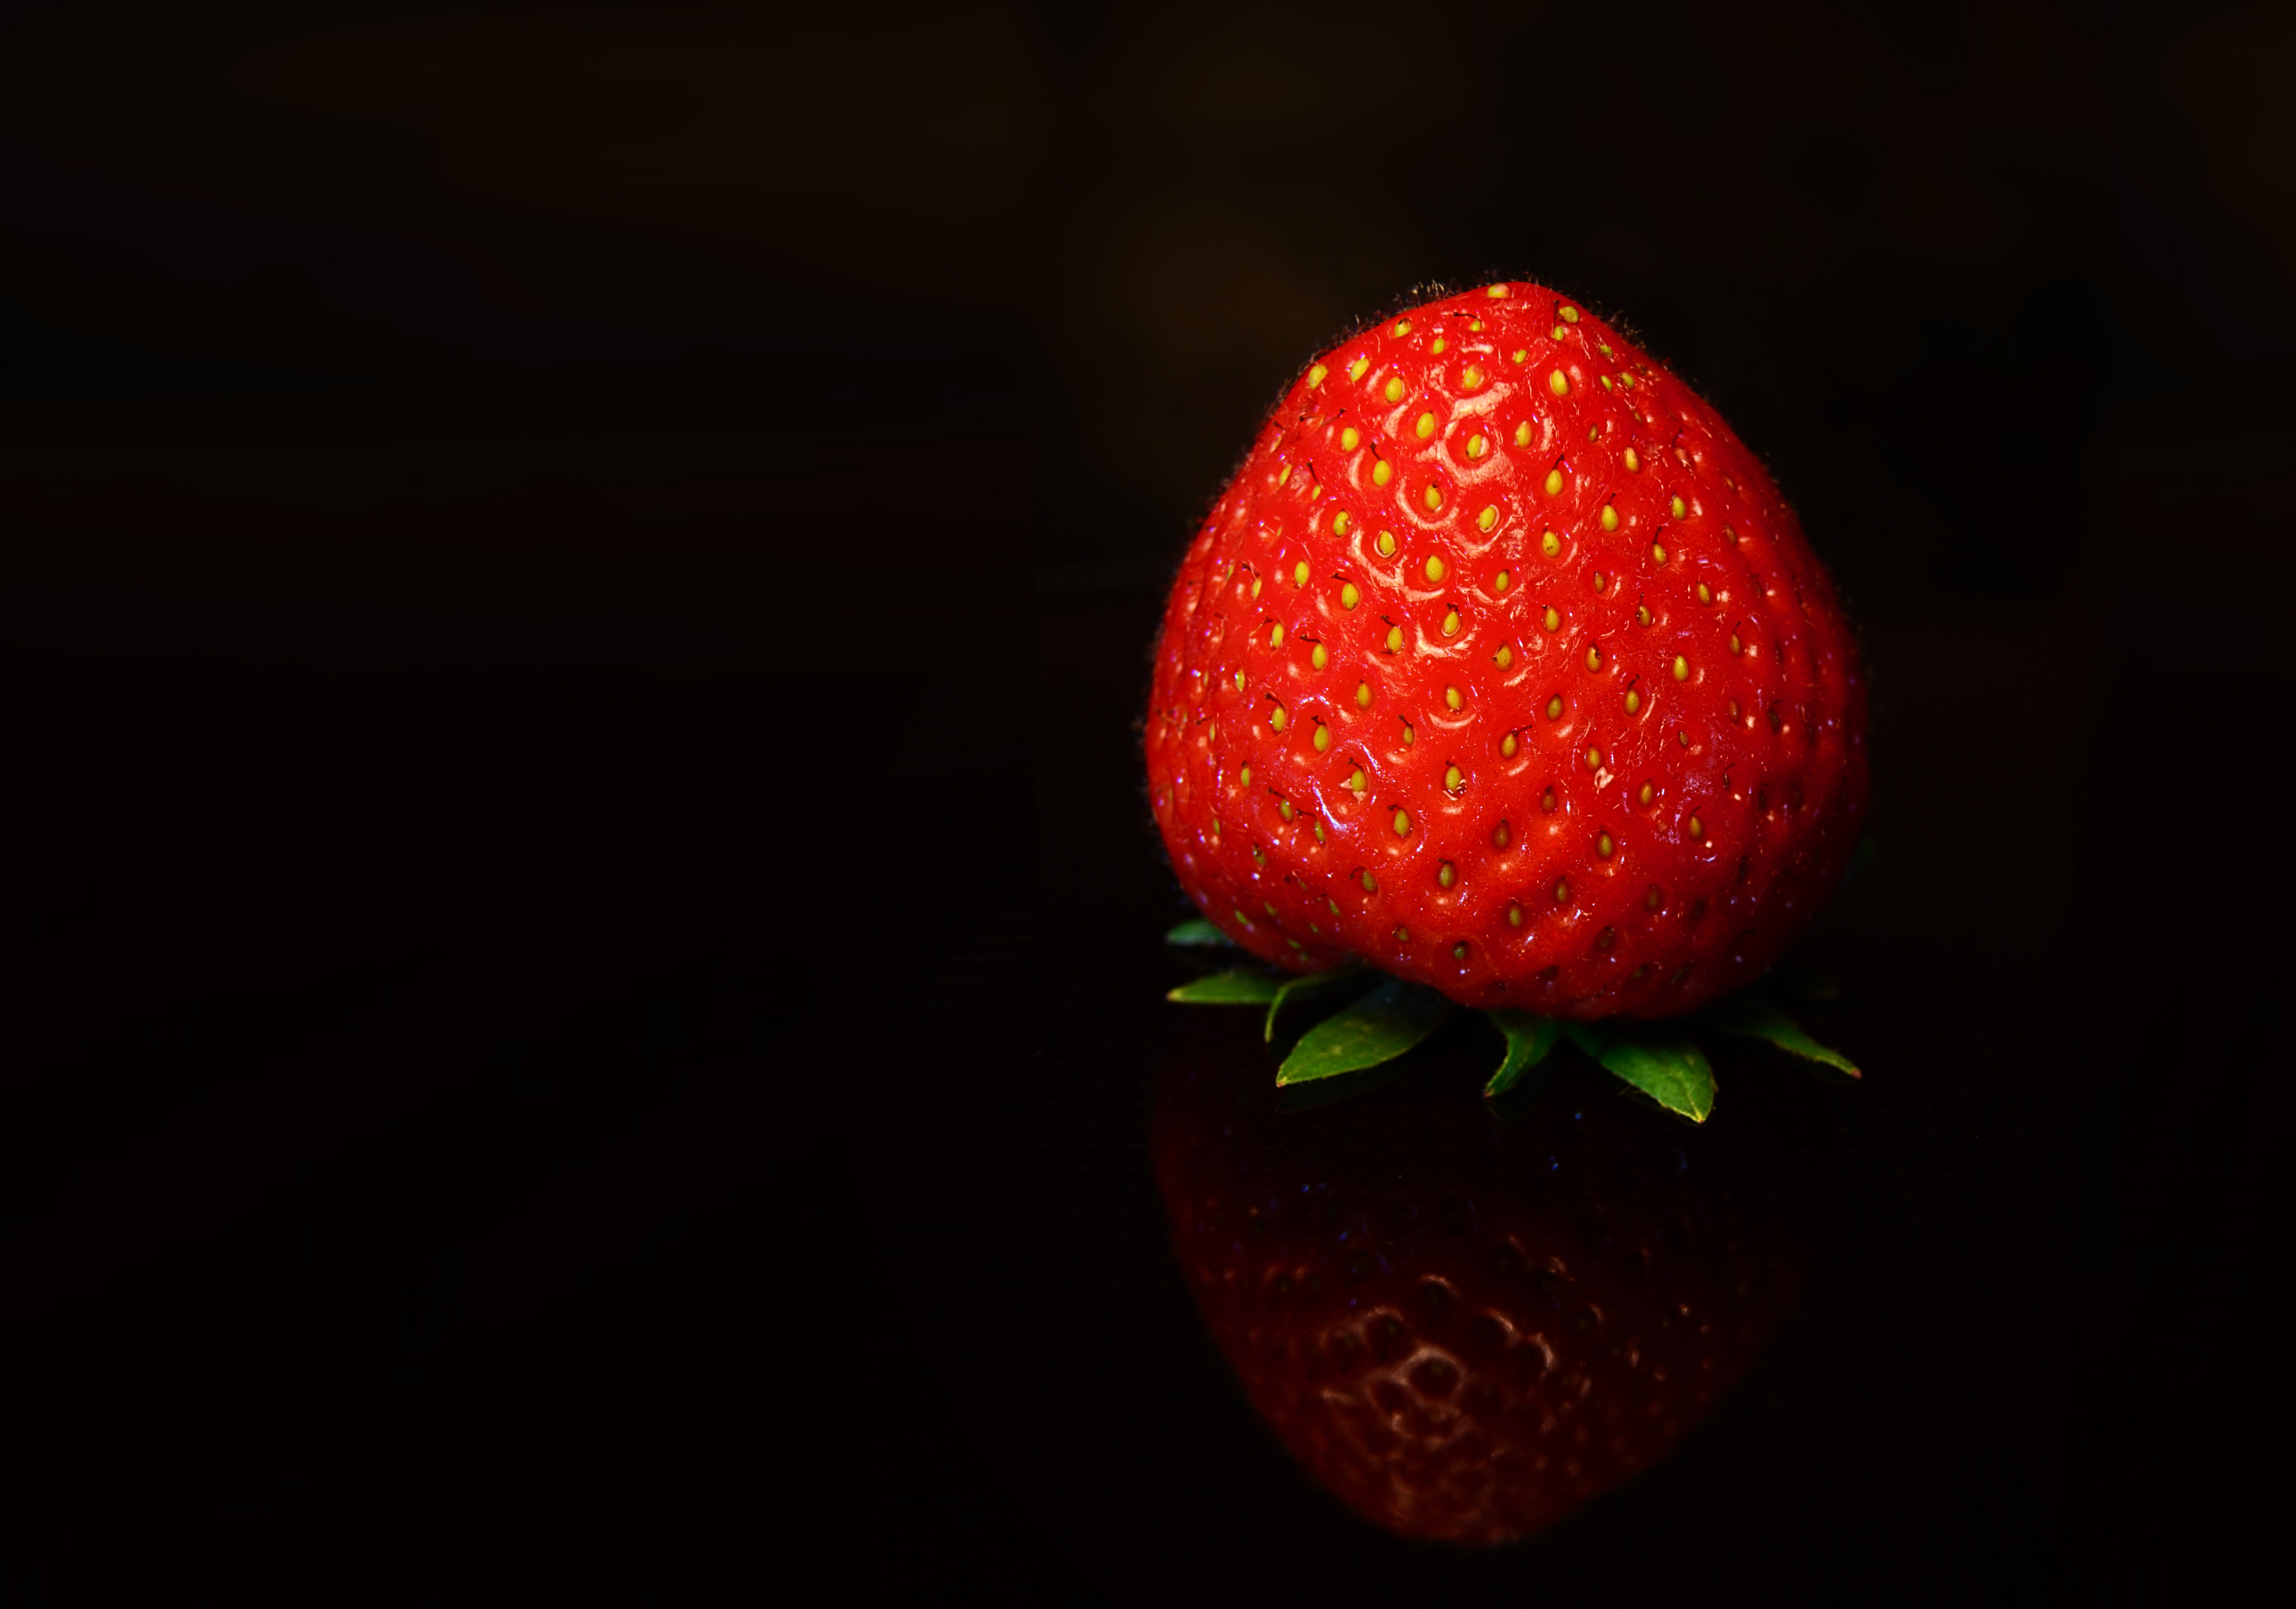 133882 download wallpaper Food, Strawberry, Berry, Black Background screensavers and pictures for free